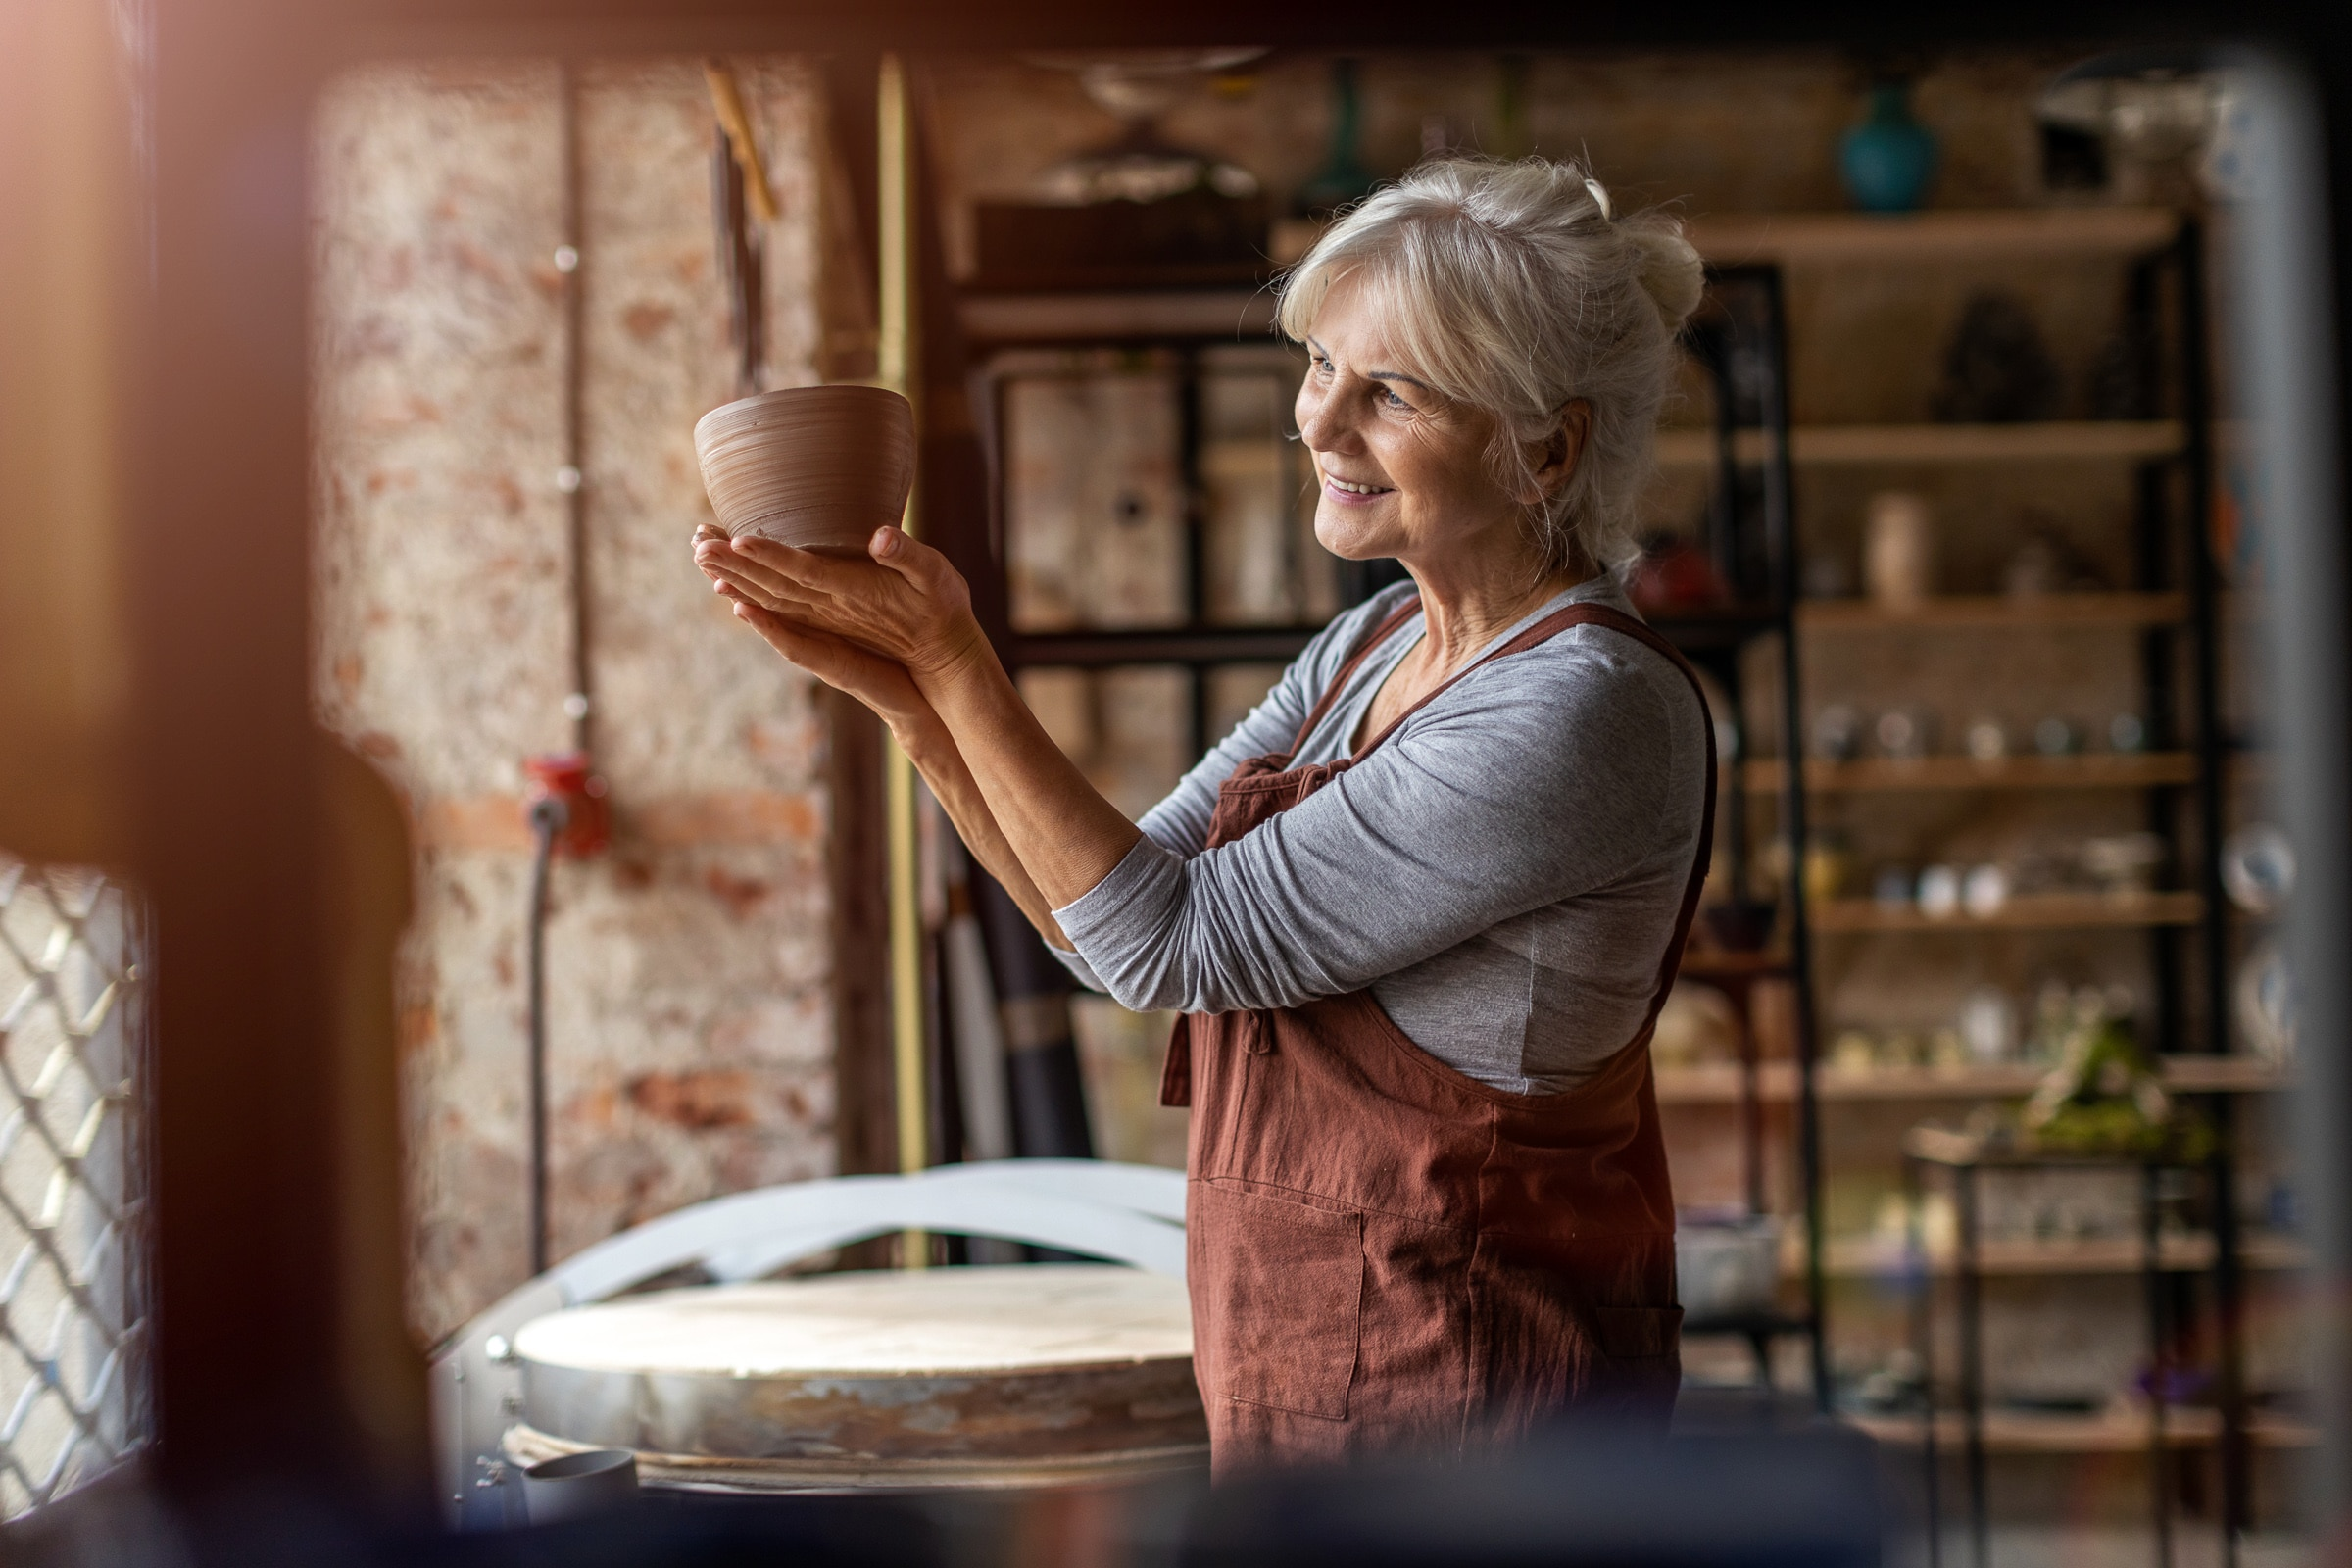 Smiling senior woman pottery artist business owner proudly looks a her ceramics from clay